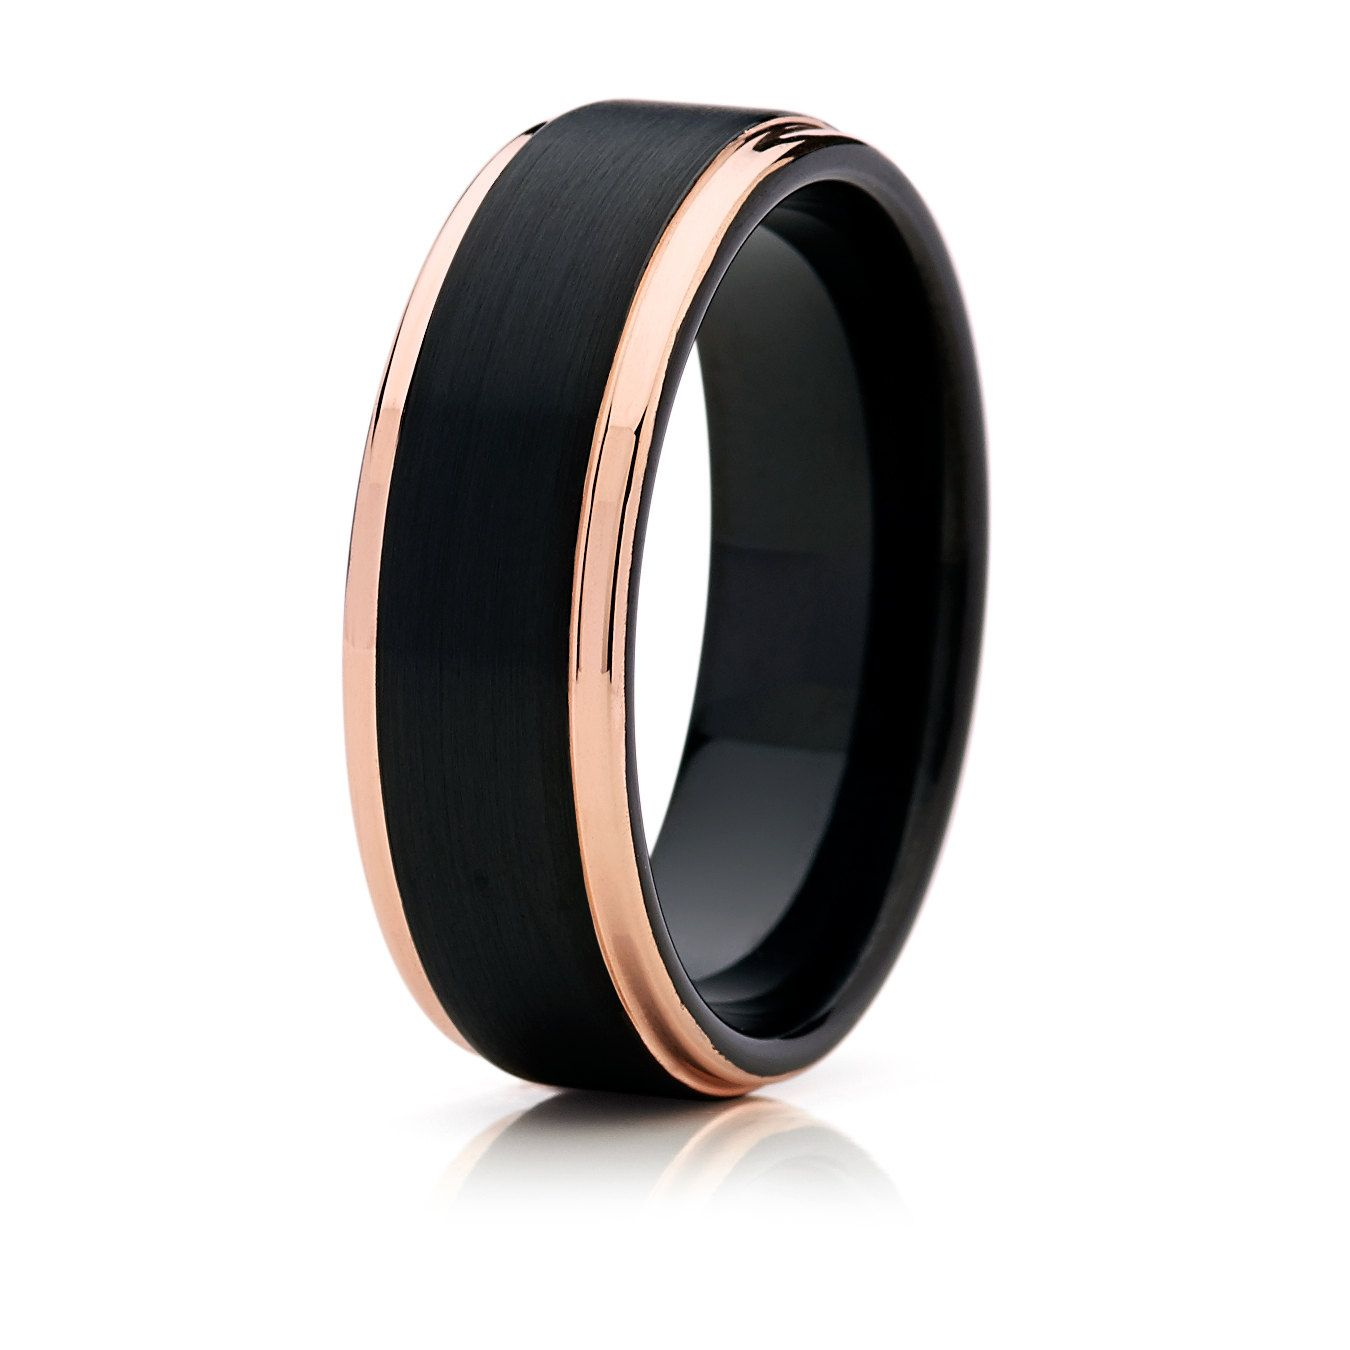 Black With Rose Gold Tungsten Mens Wedding Bandtungsten Ringtungsten Uni Band Anniversary Ring